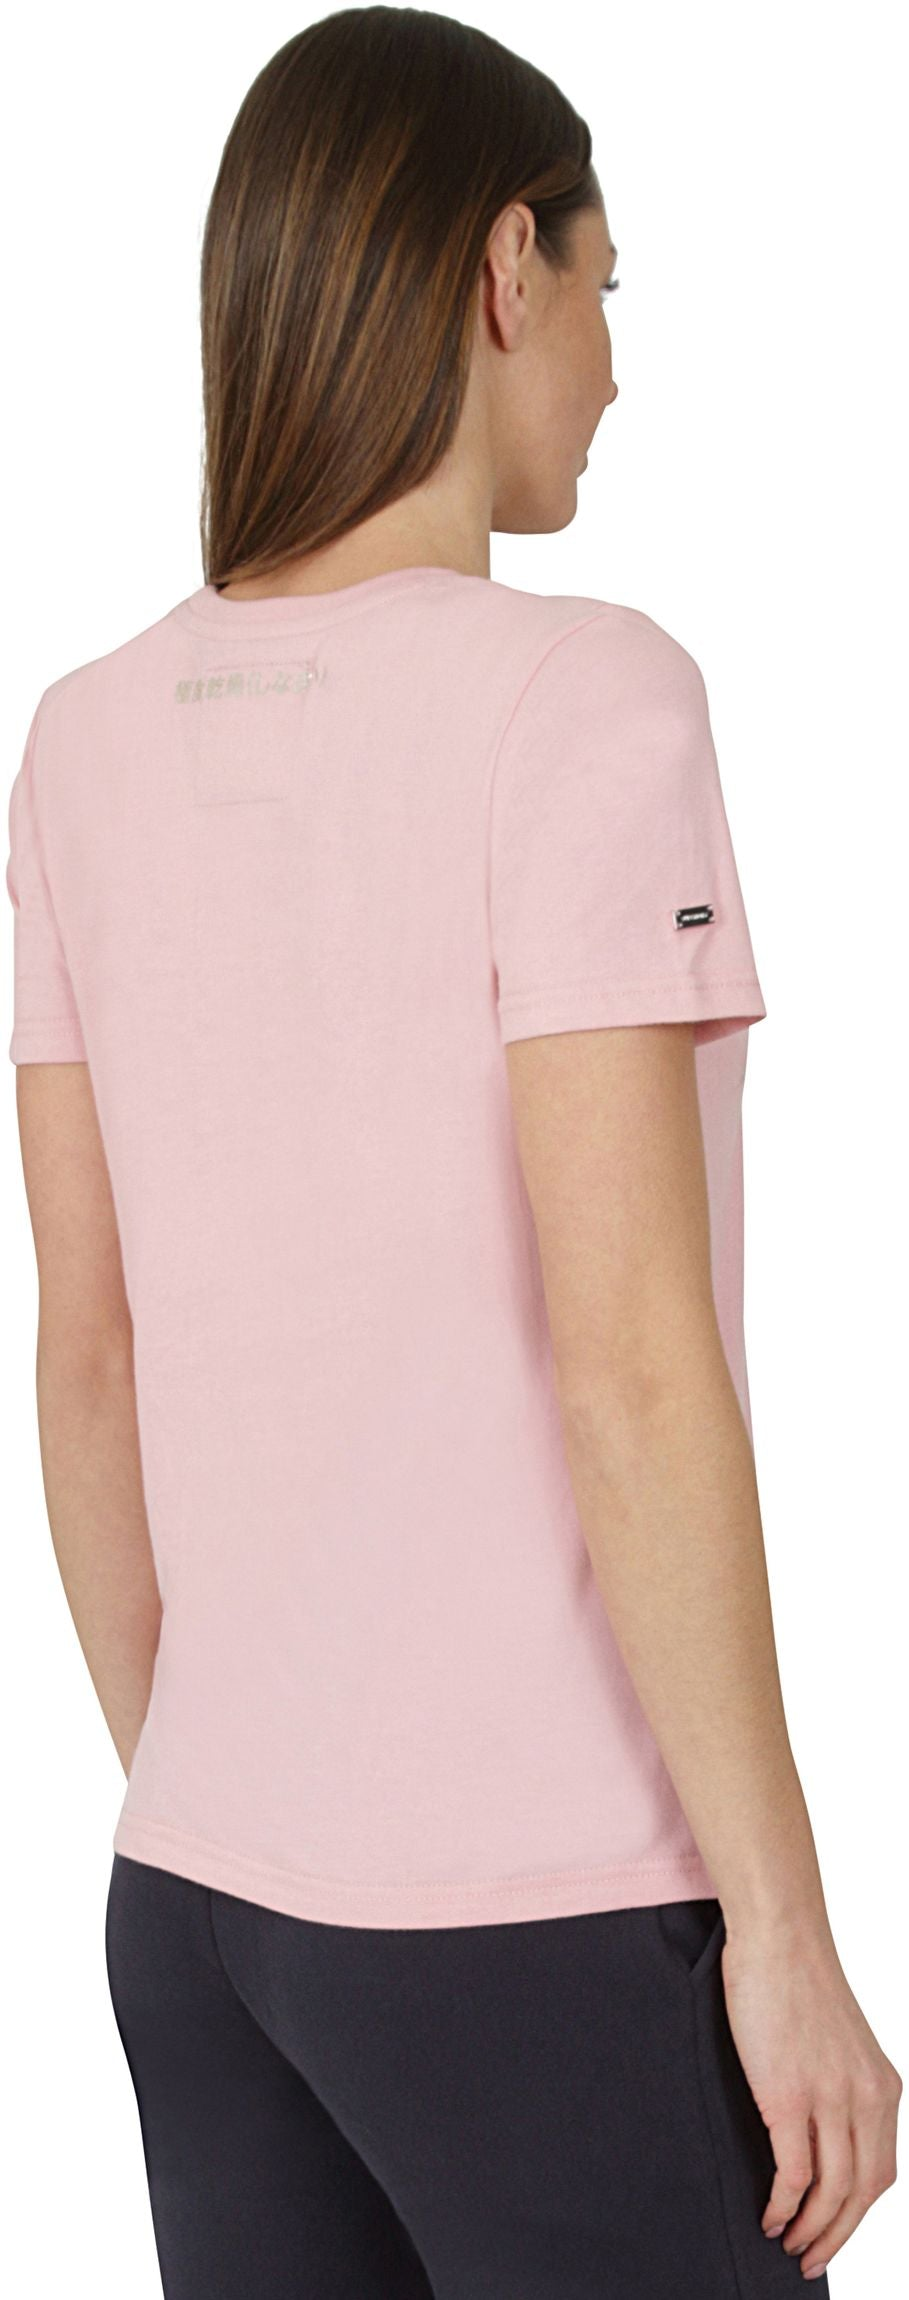 Superdry Premium Goods Luxe Embroidered T-Shirt Pink Nectar